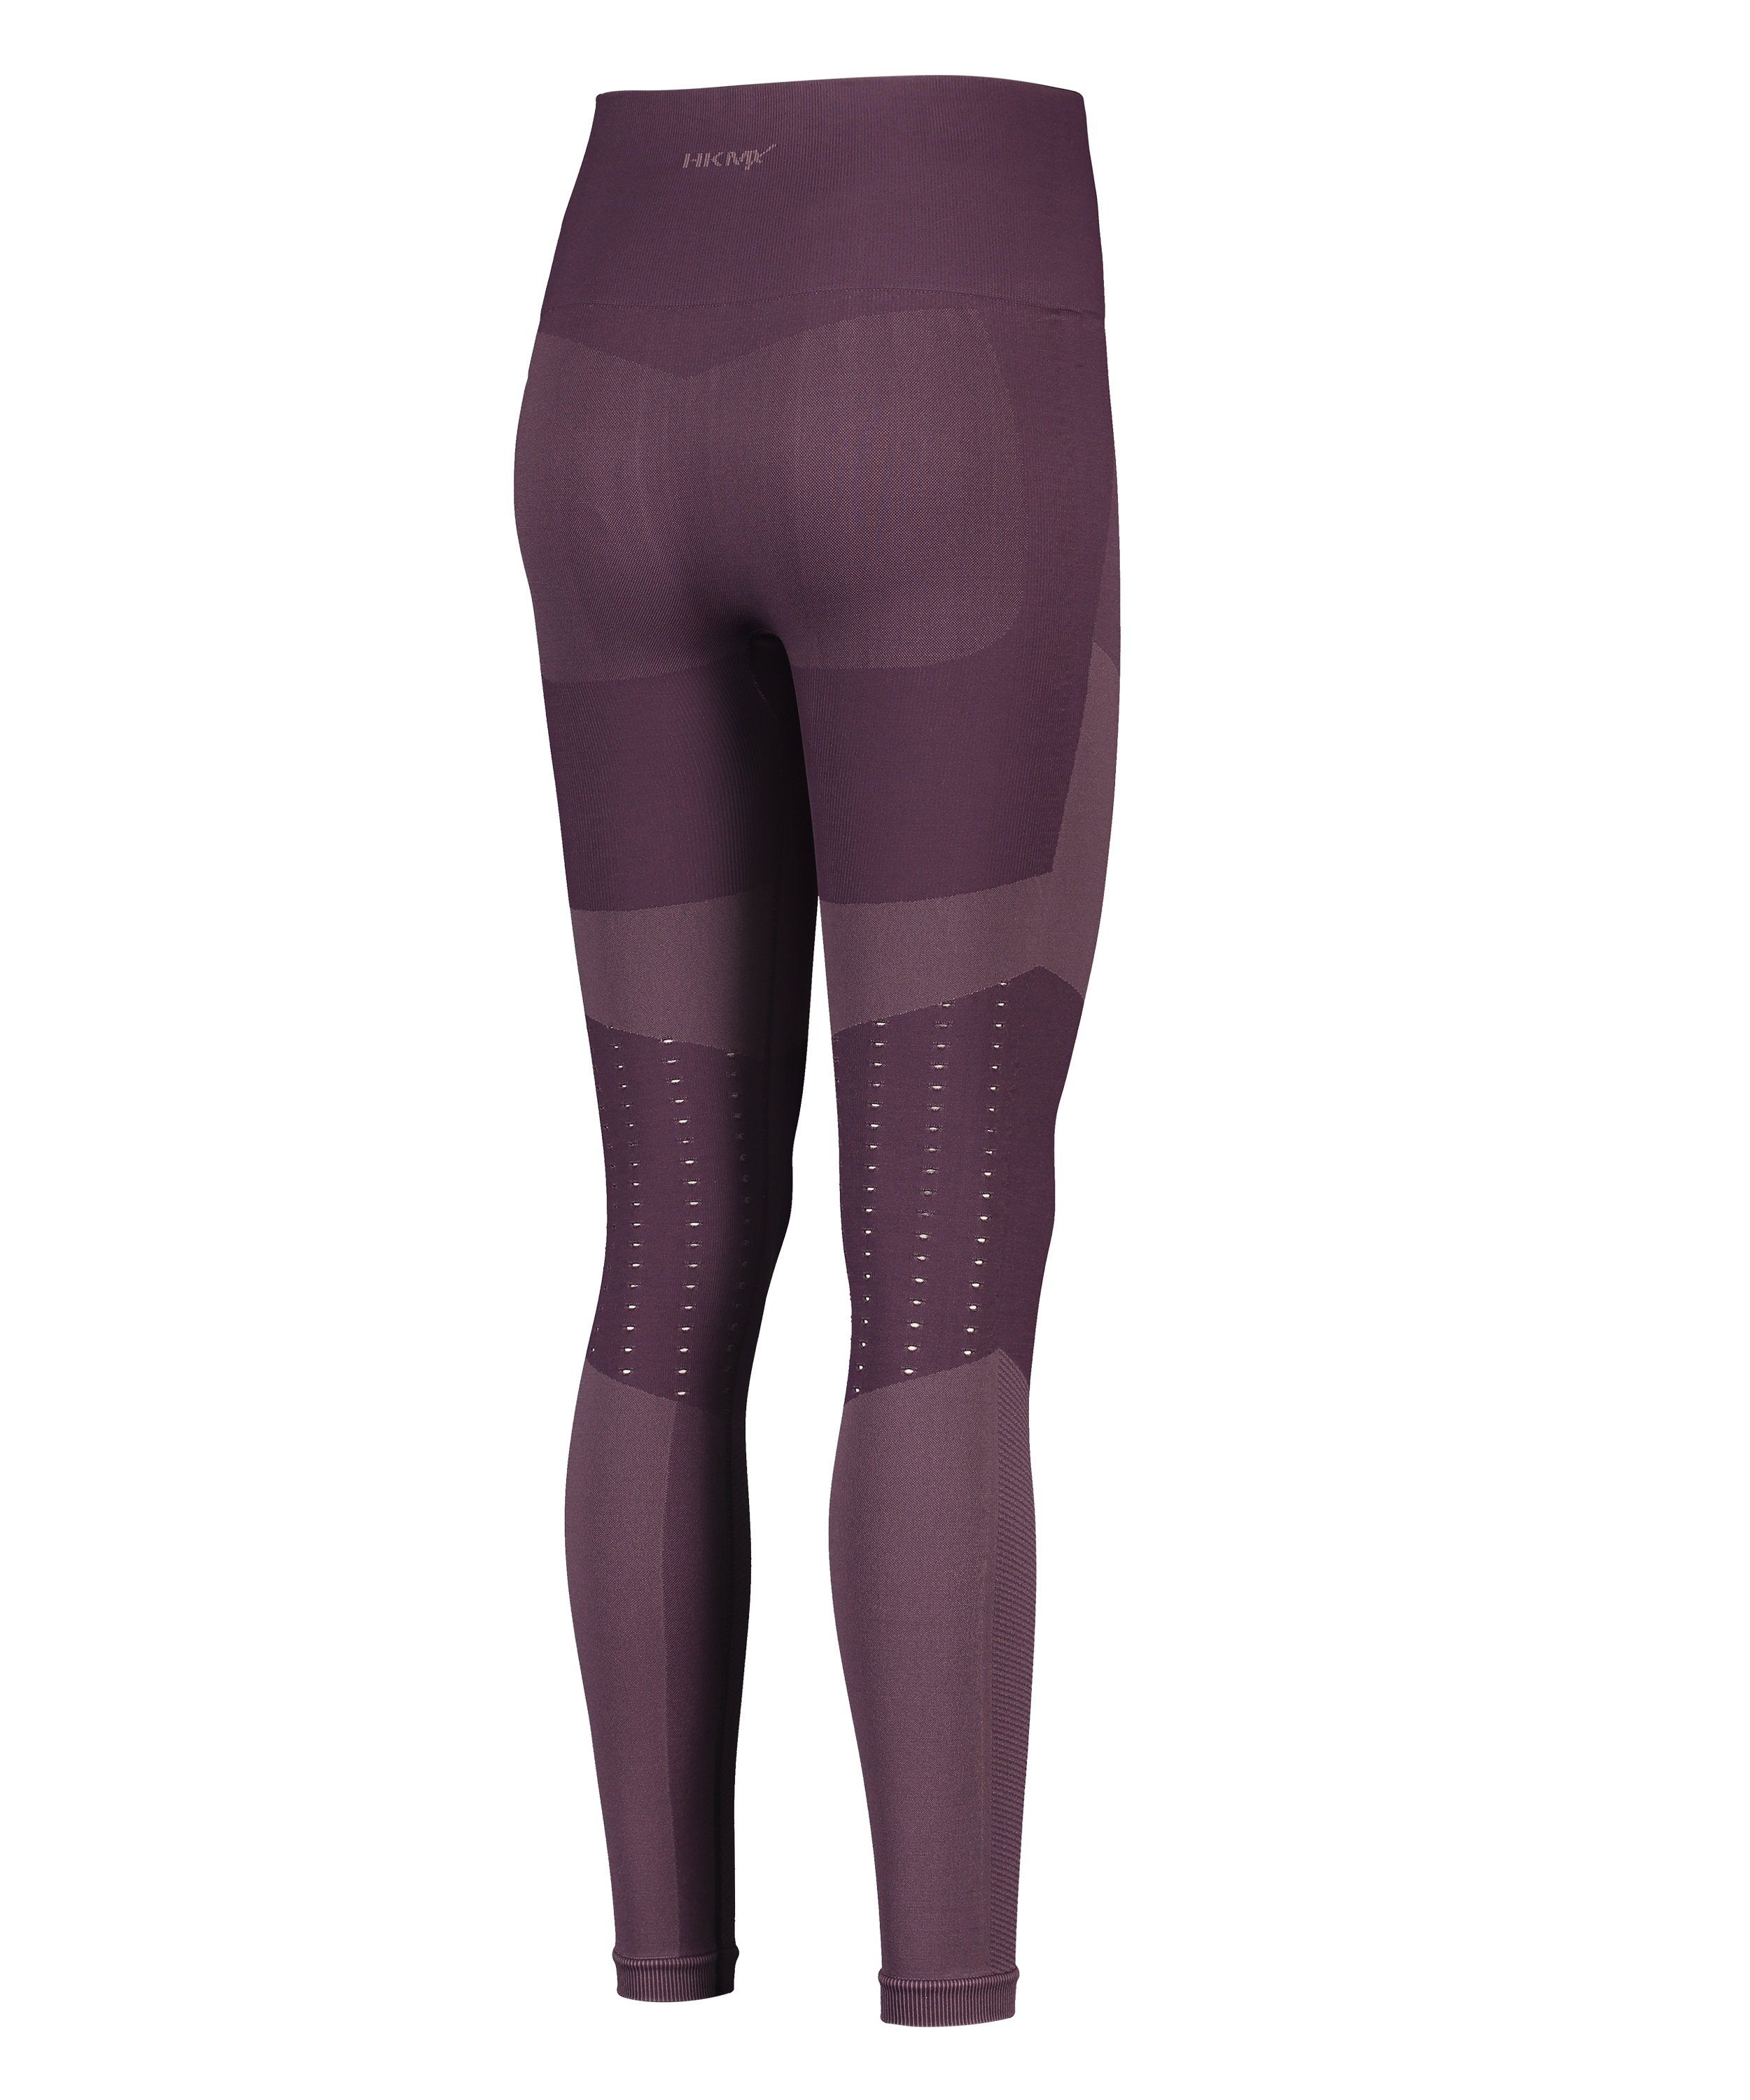 HKMX The Motion High Waisted Legging , Paars, main